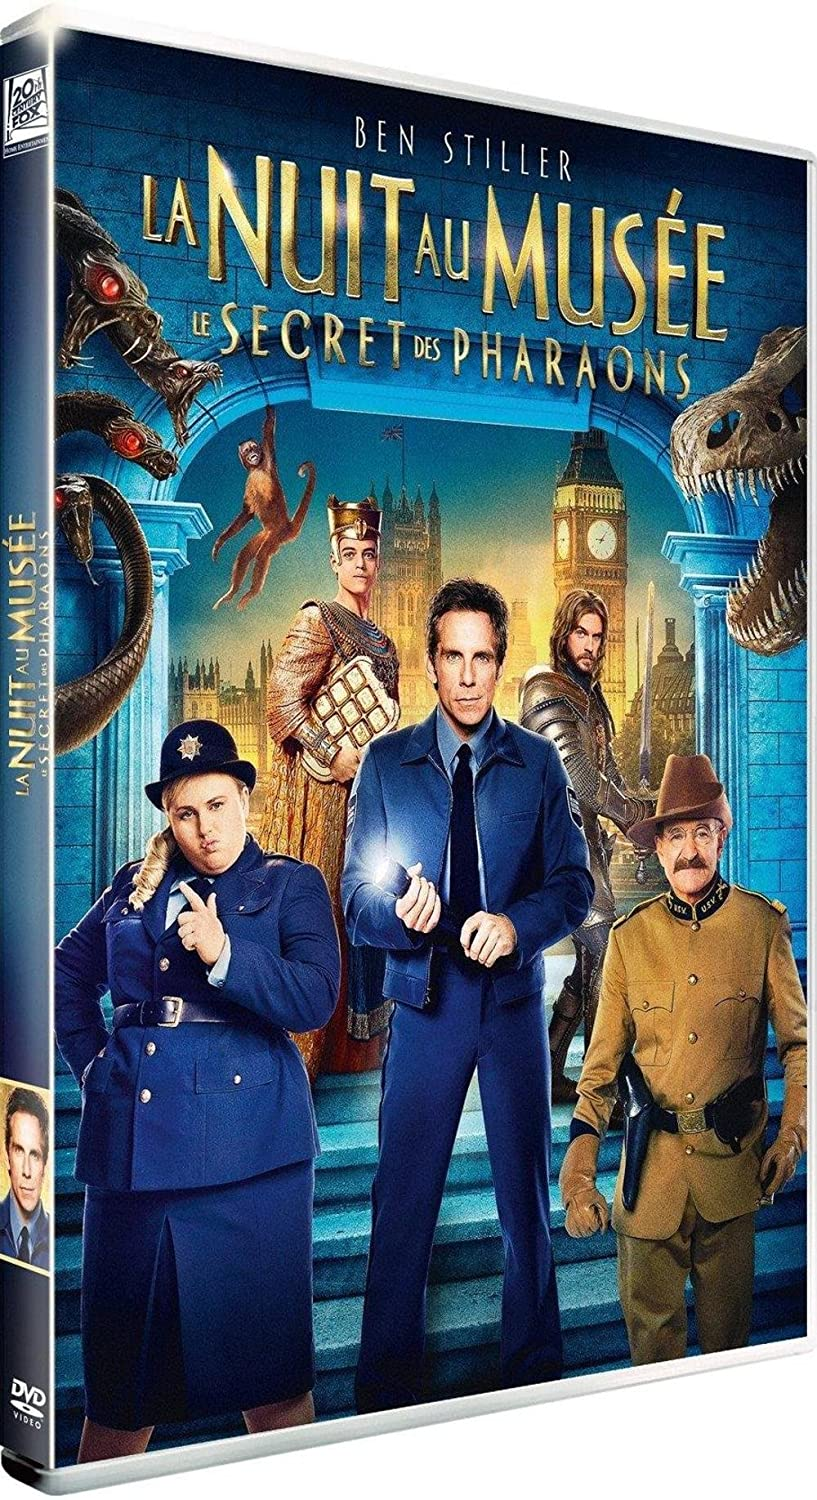 La Nuit au musée 3 = Night at the museum 3 : secret of the tomb : Secret des pharaons (Le) / Shawn Levy, Réal. | Levy, Shawn. Monteur